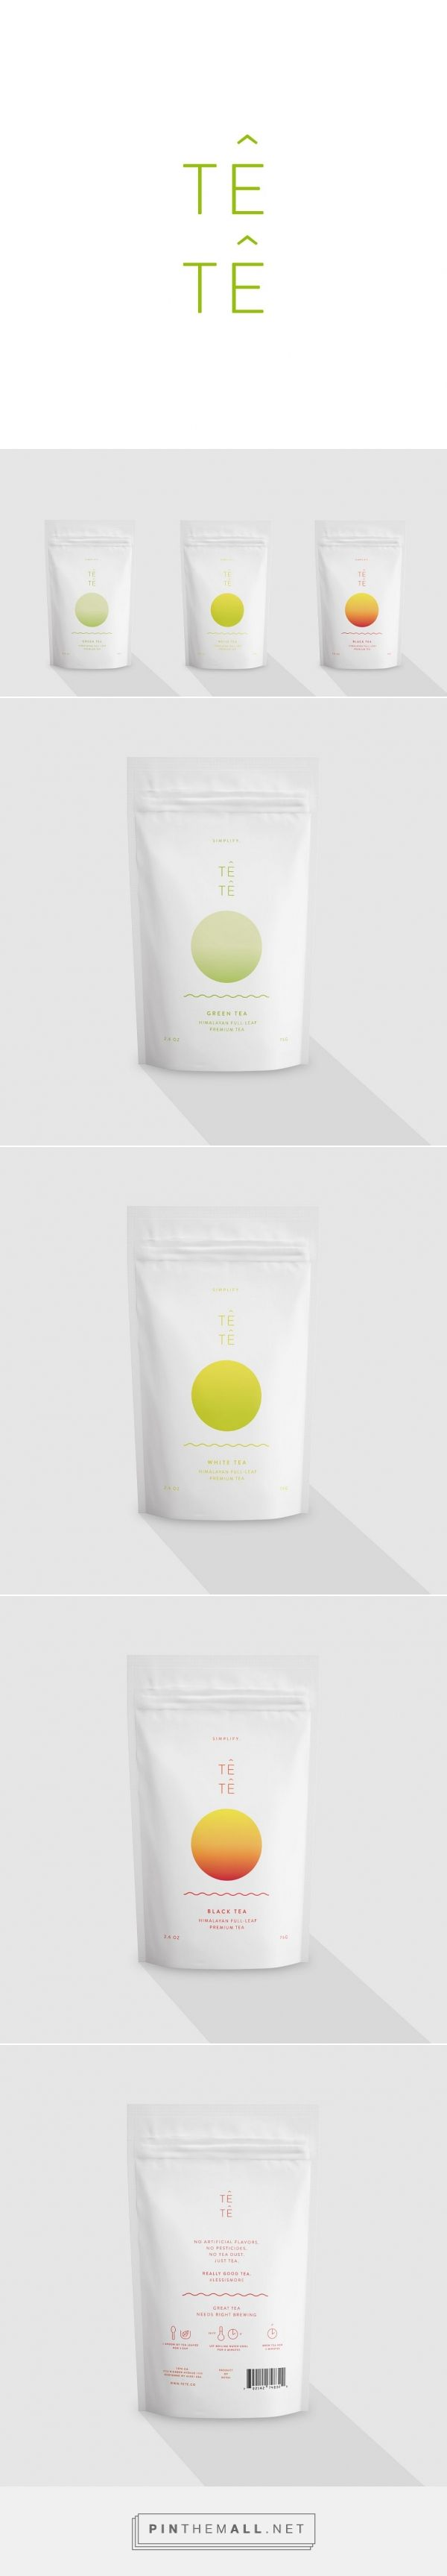 Têtê – tea packaging,  I honestly wasn't sure what the product was but I was oddly  drawn to the packaging when I saw it.